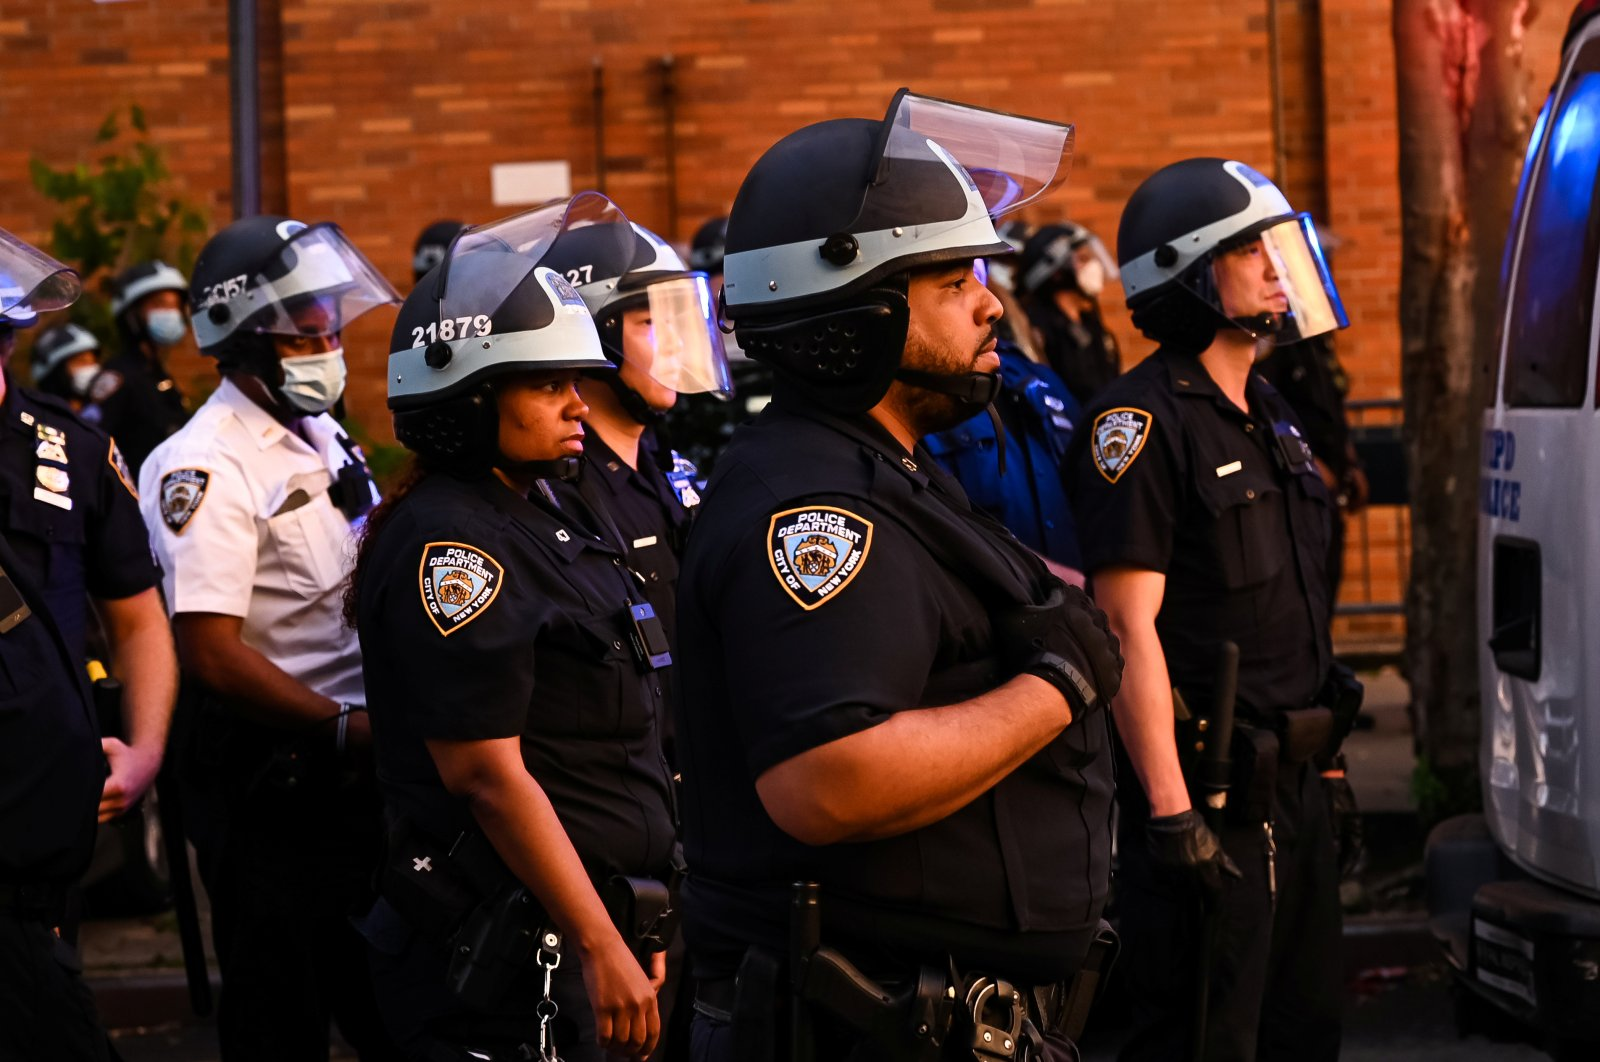 The NYPD watches as demonstrators protest against racial inequality in the aftermath of the death in Minneapolis police custody of George Floyd, in New York City, New York, U.S. June 11, 2020. (Reuters Photo)